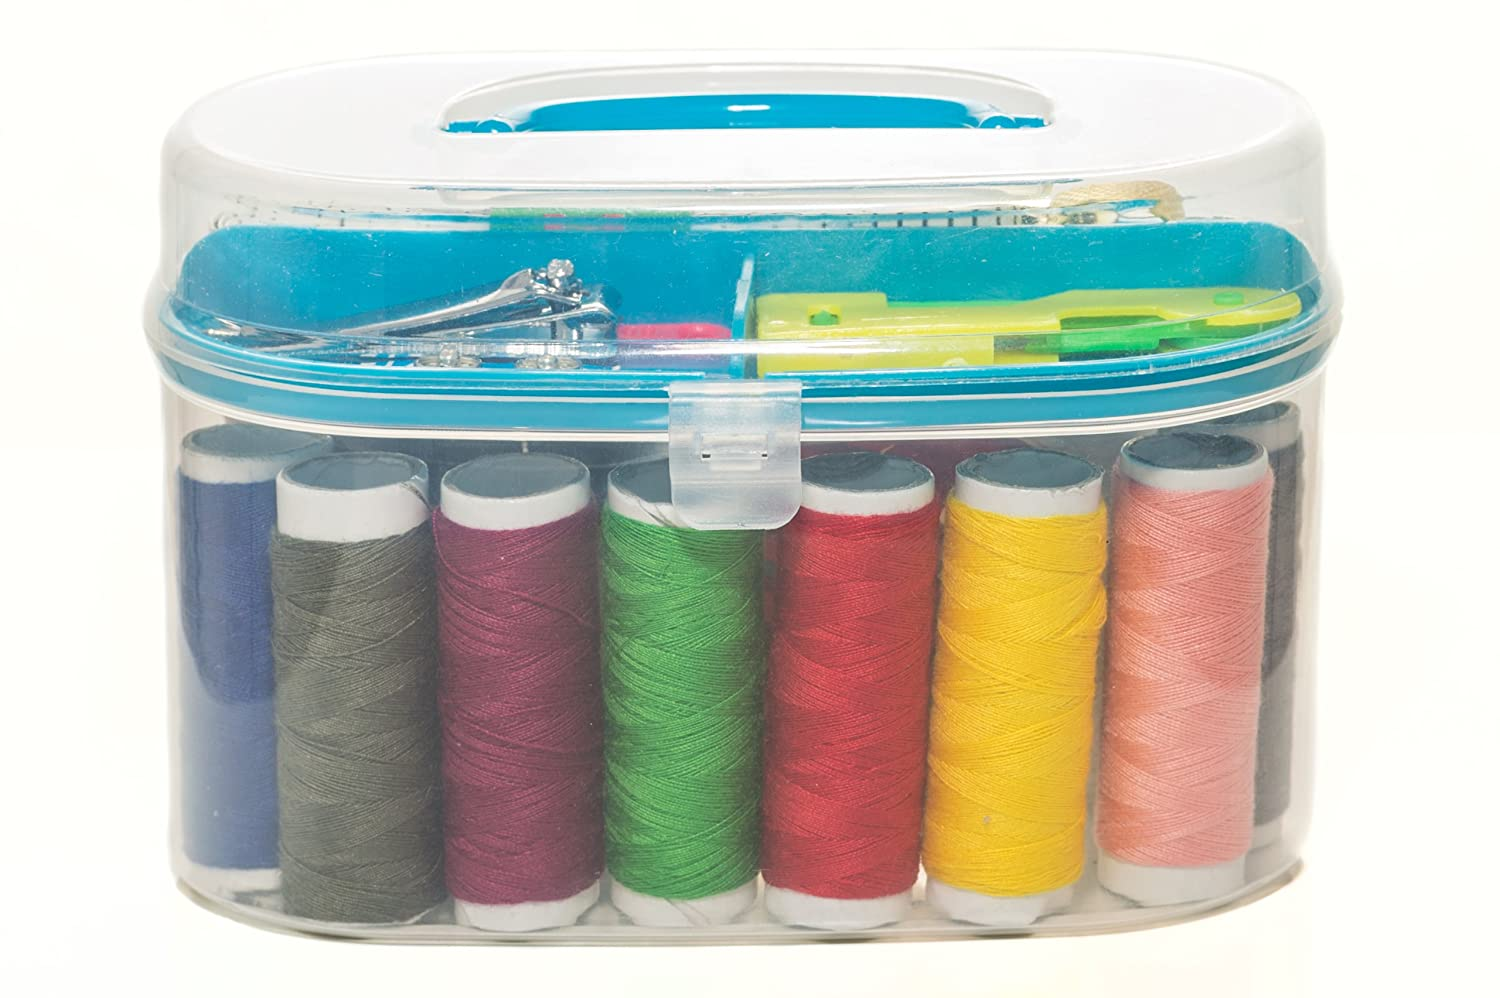 Portable Travel Sewing Kit - Suitable for Beginners & Girls, Comes in 5 Different Premium Colored Boxes, Over 25 Sewing Supplies Inside Makes It The Best Mini Sewing Kit GT Supplies